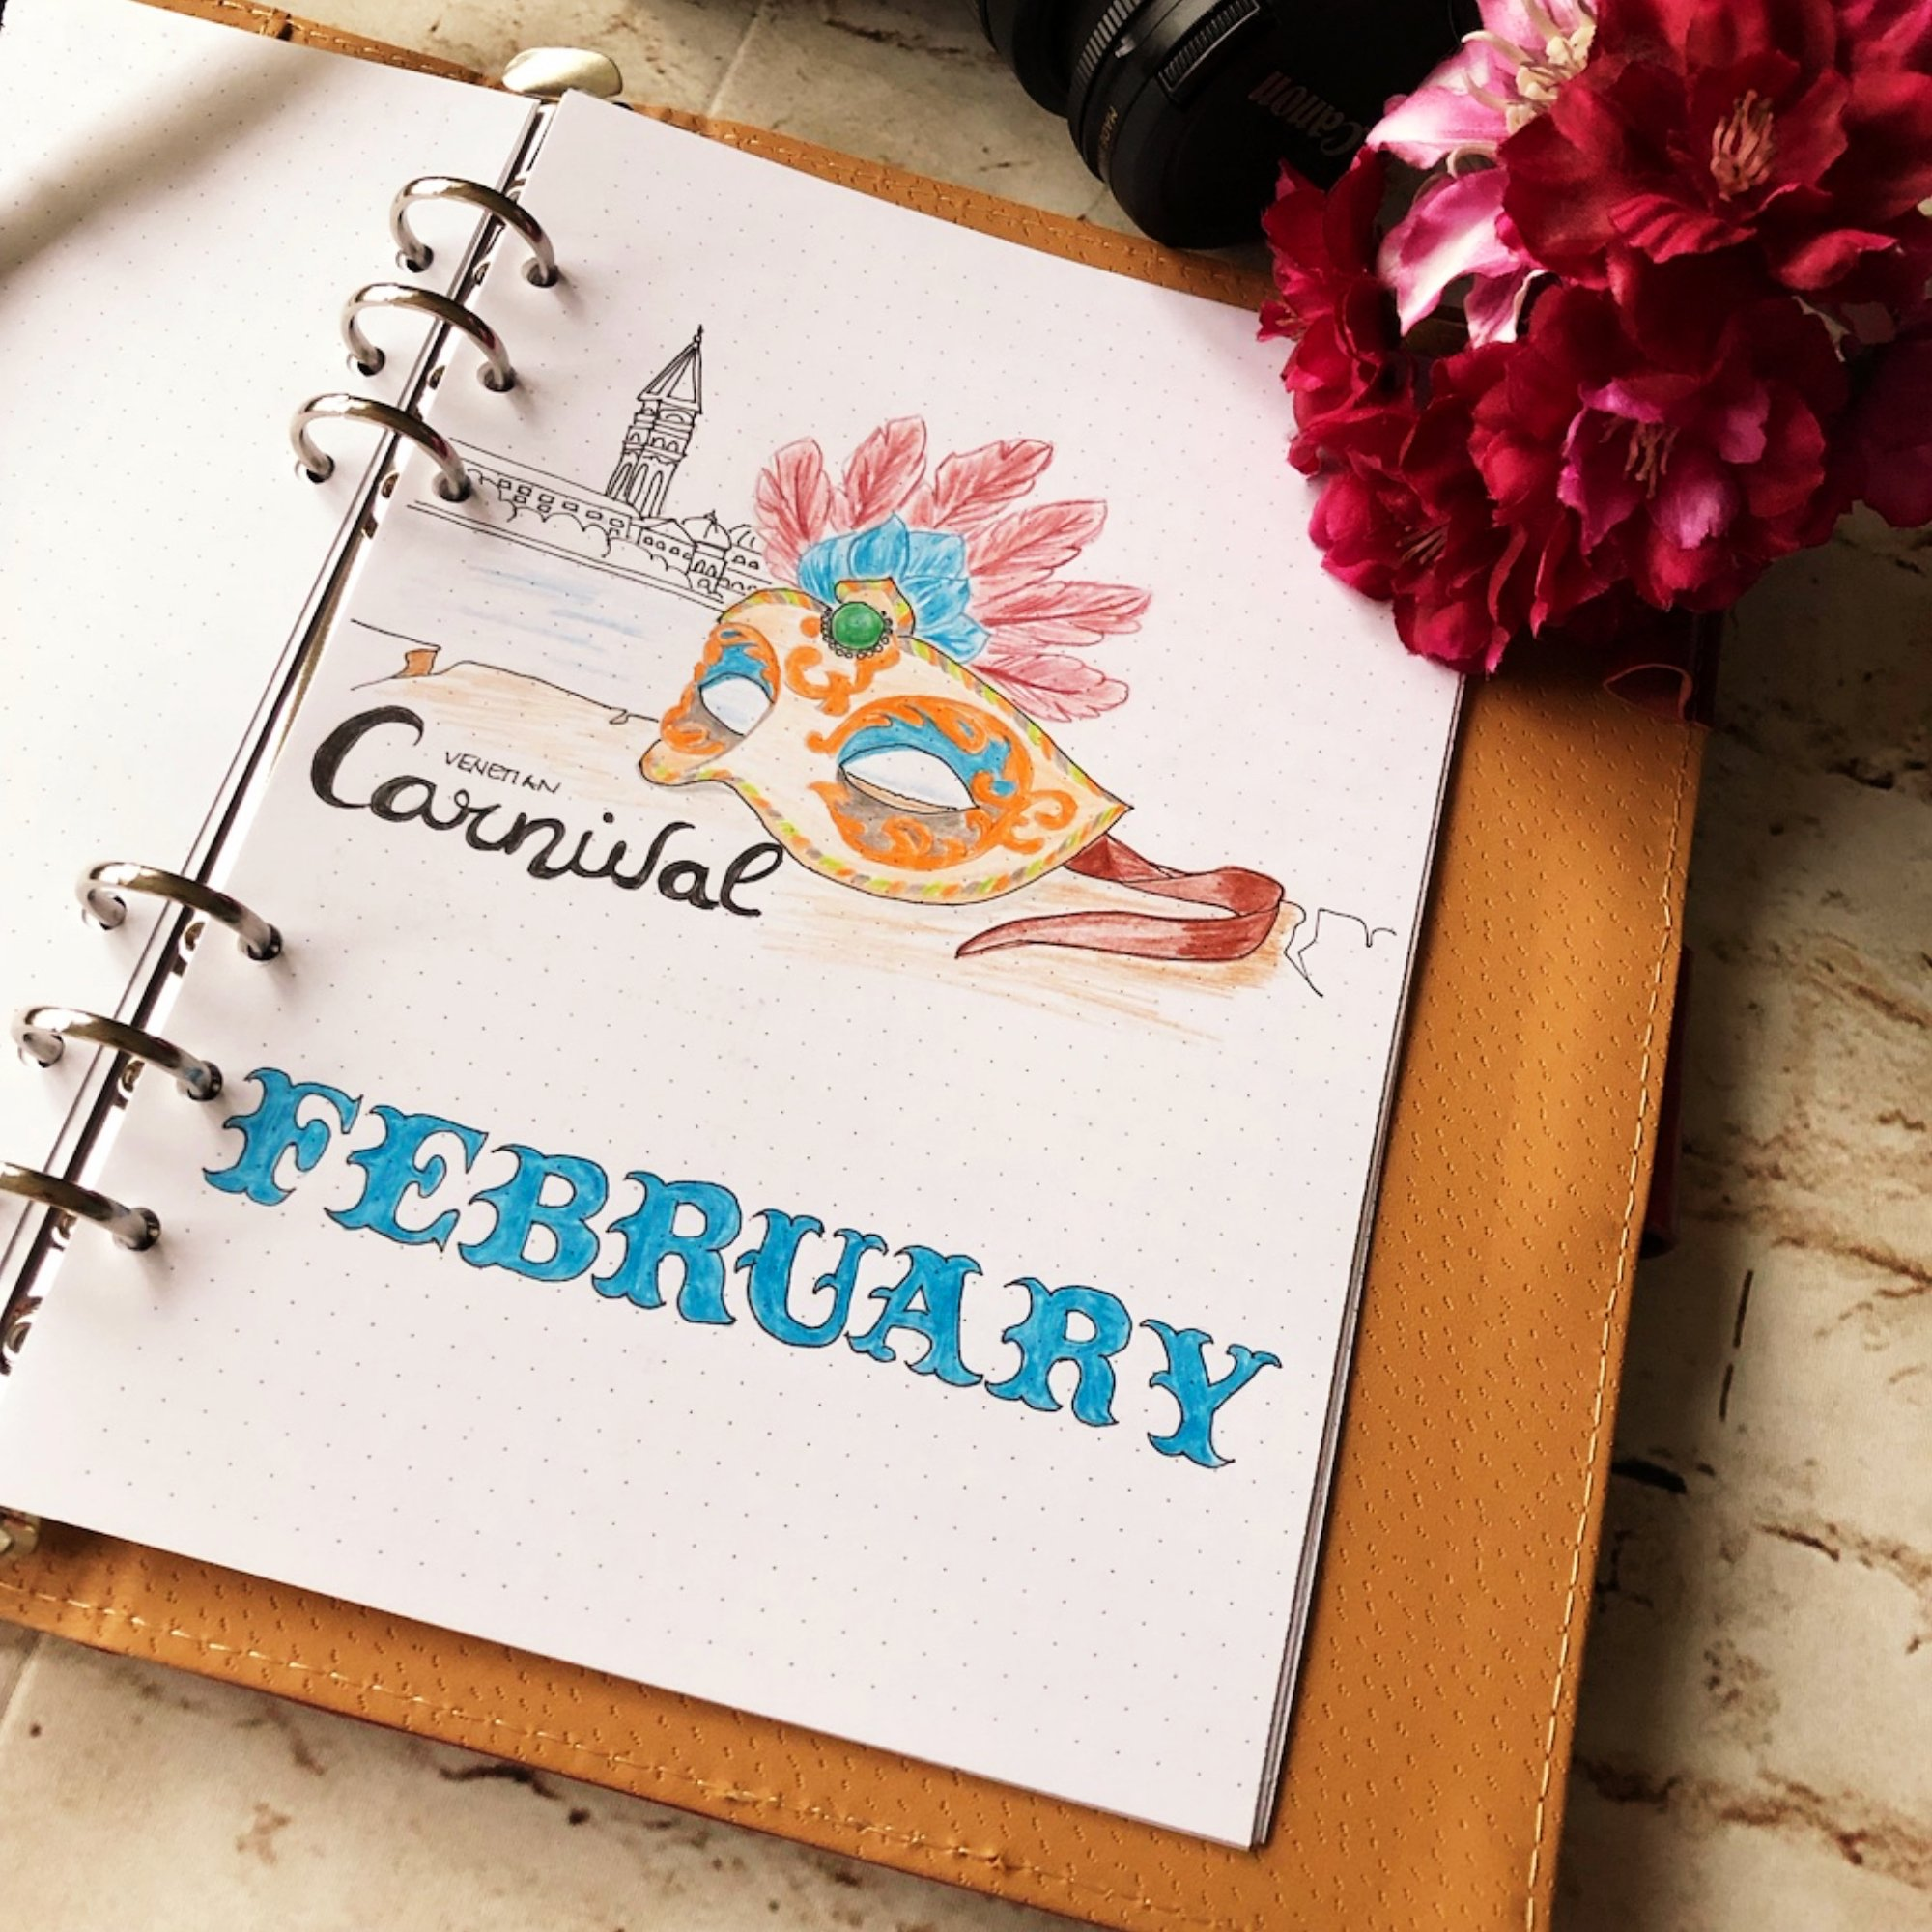 Creative journaling February 2019 - cover page - itstartswithacoffee.com #creativejournaling #bulletjournaling #monthlyplanner #monthlycover #coverpages #February #creativeplanning #creativeplanner #planner